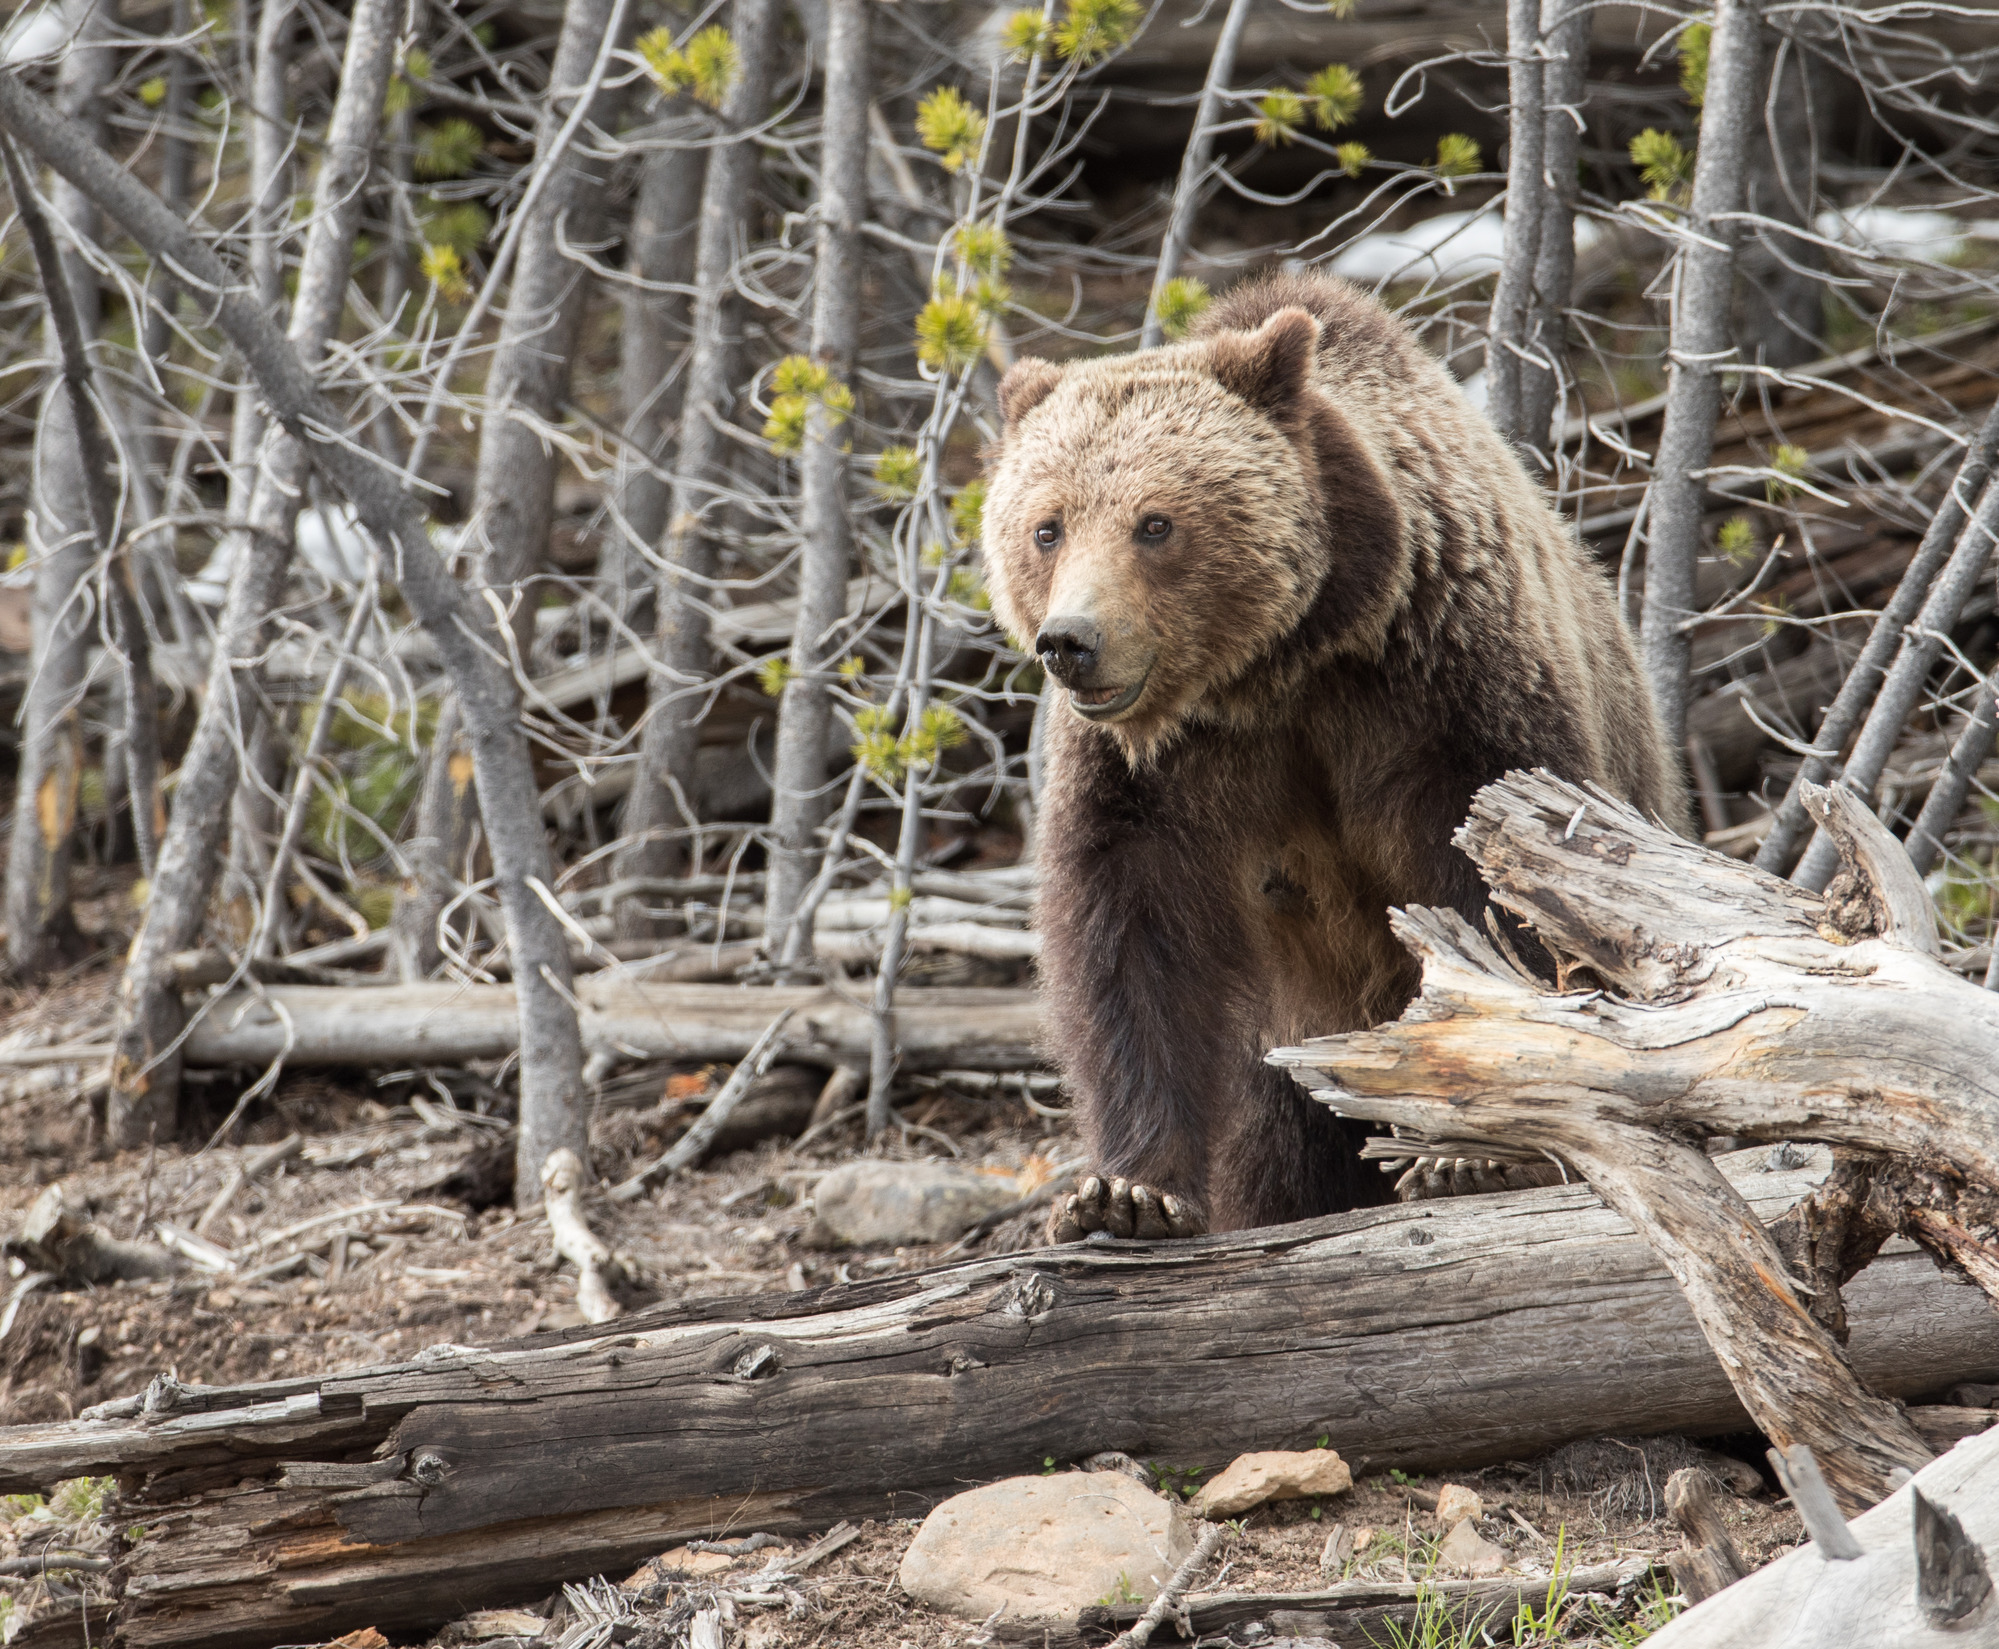 Grizzly at Yellowstone